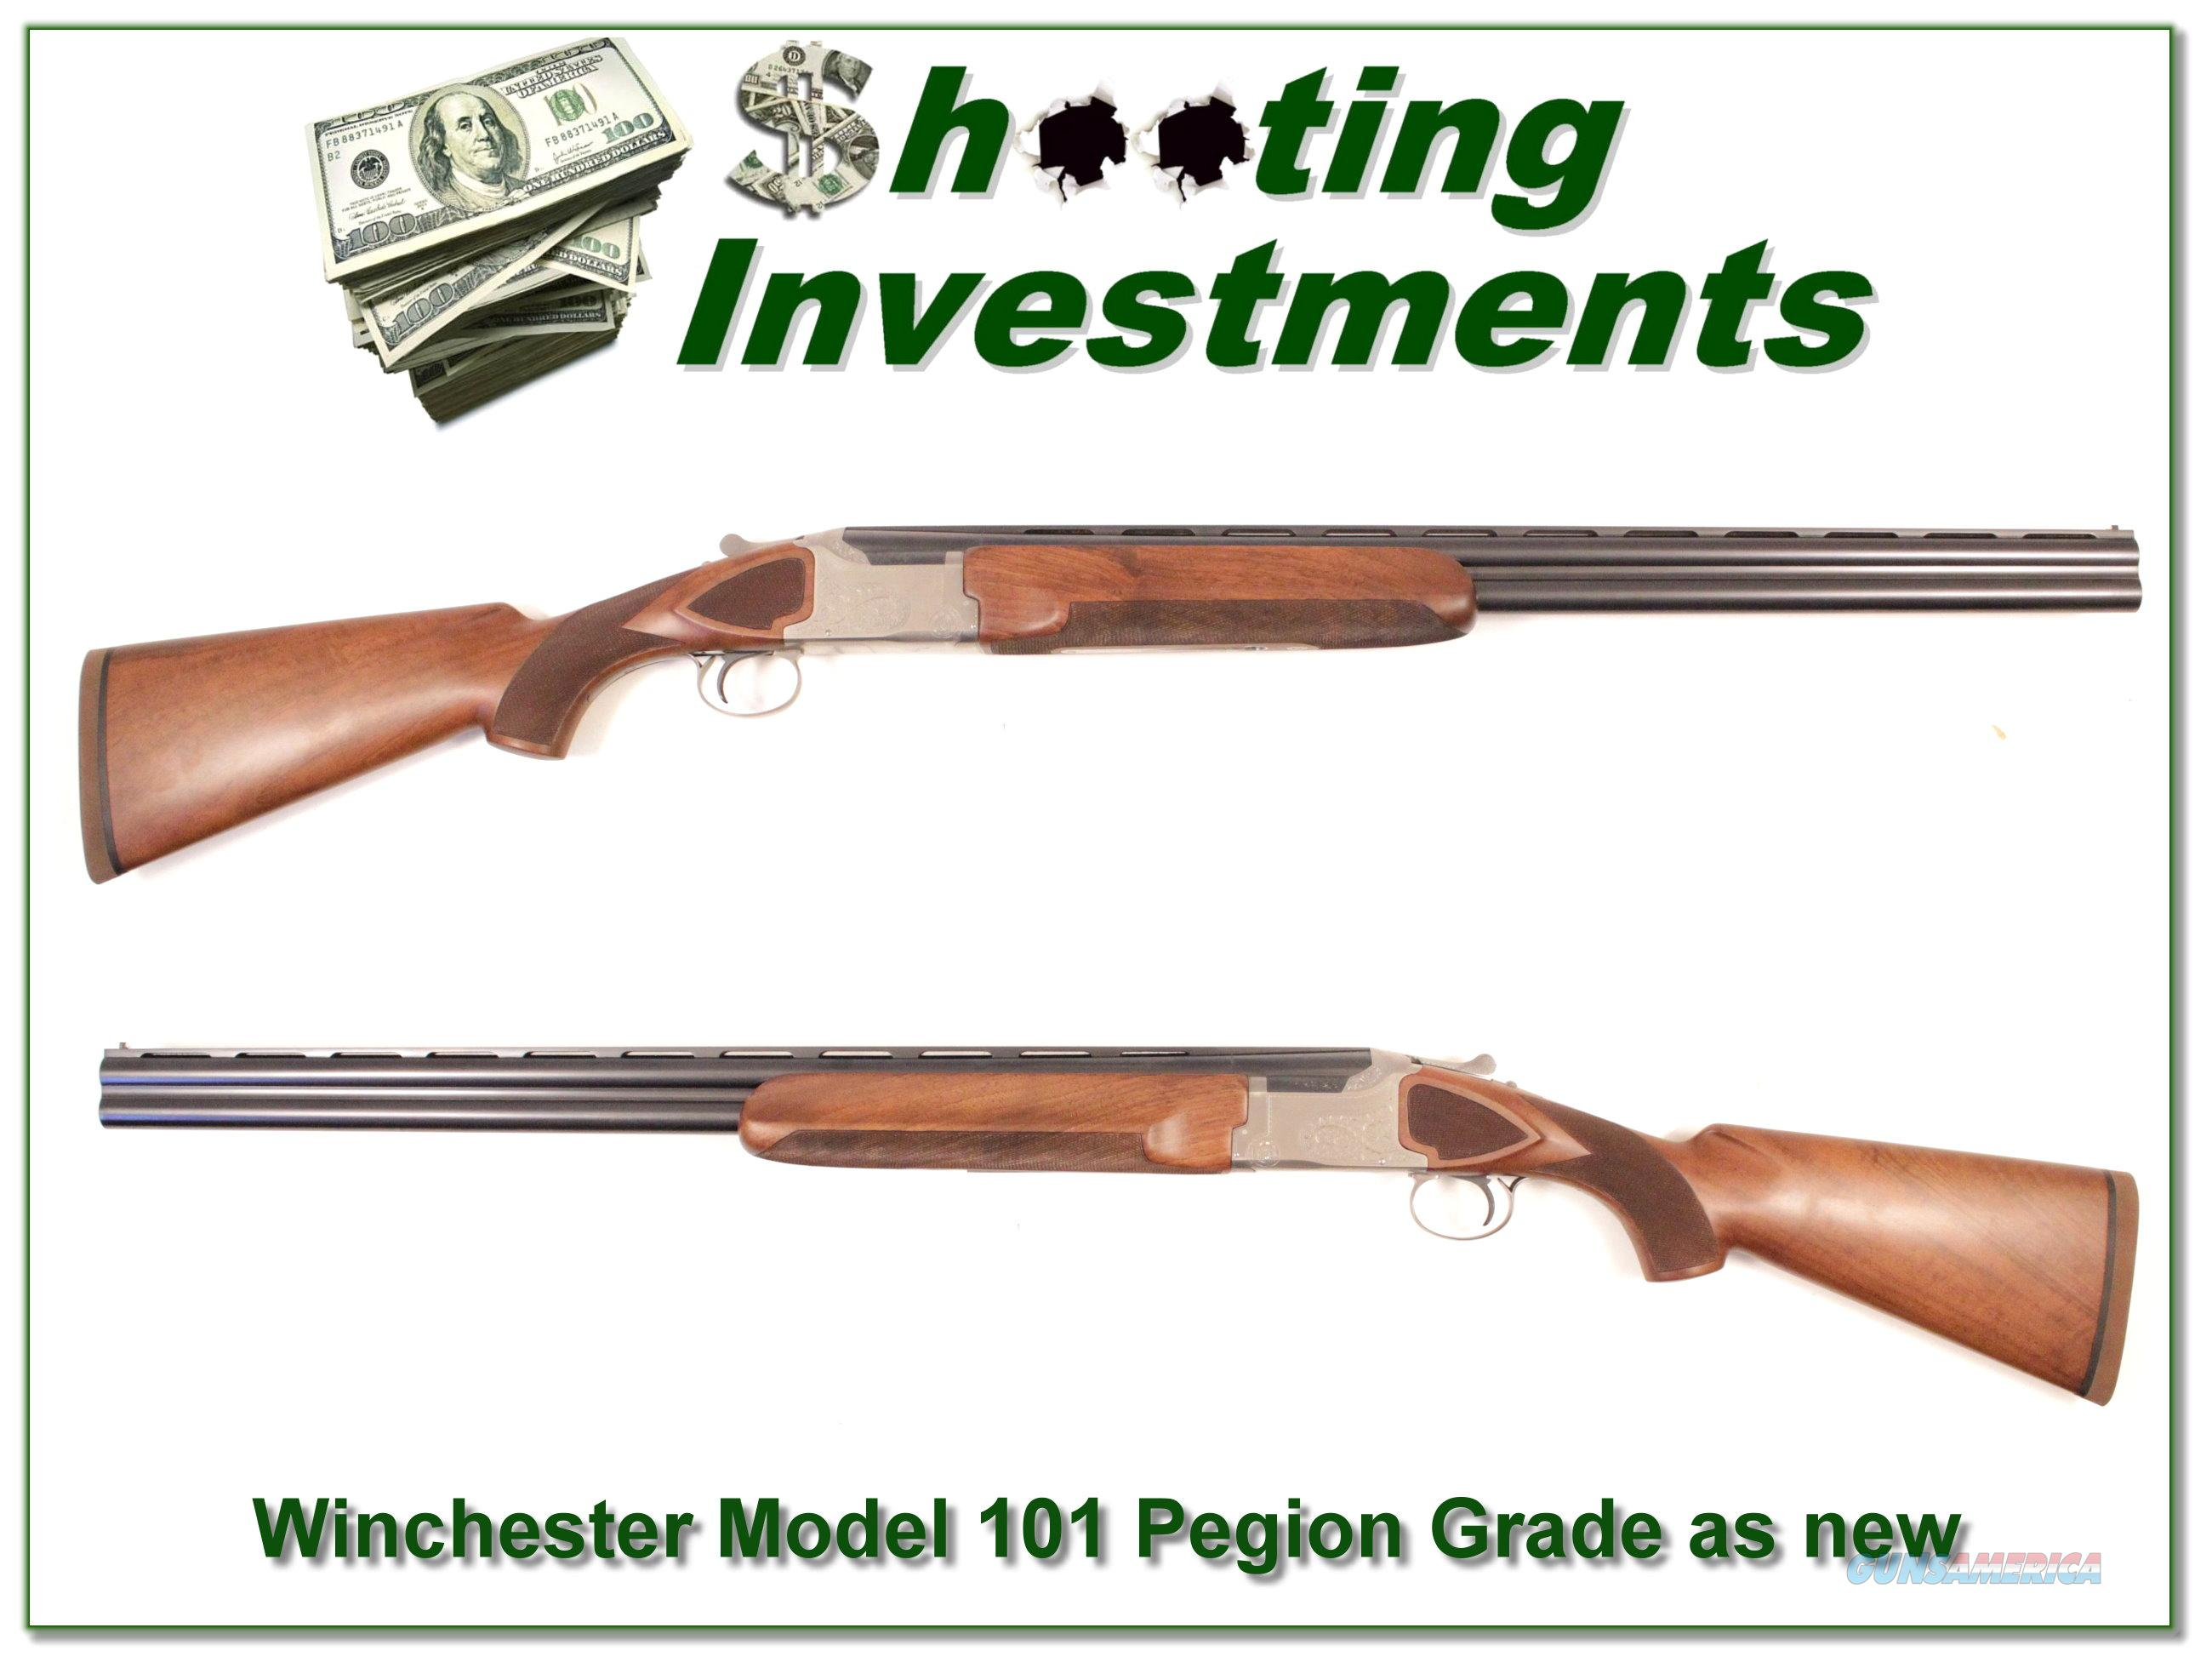 Winchester Model 101 12 gauge 27in Skeet looks new  Guns > Shotguns > Winchester Shotguns - Modern > O/U > Trap/Skeet